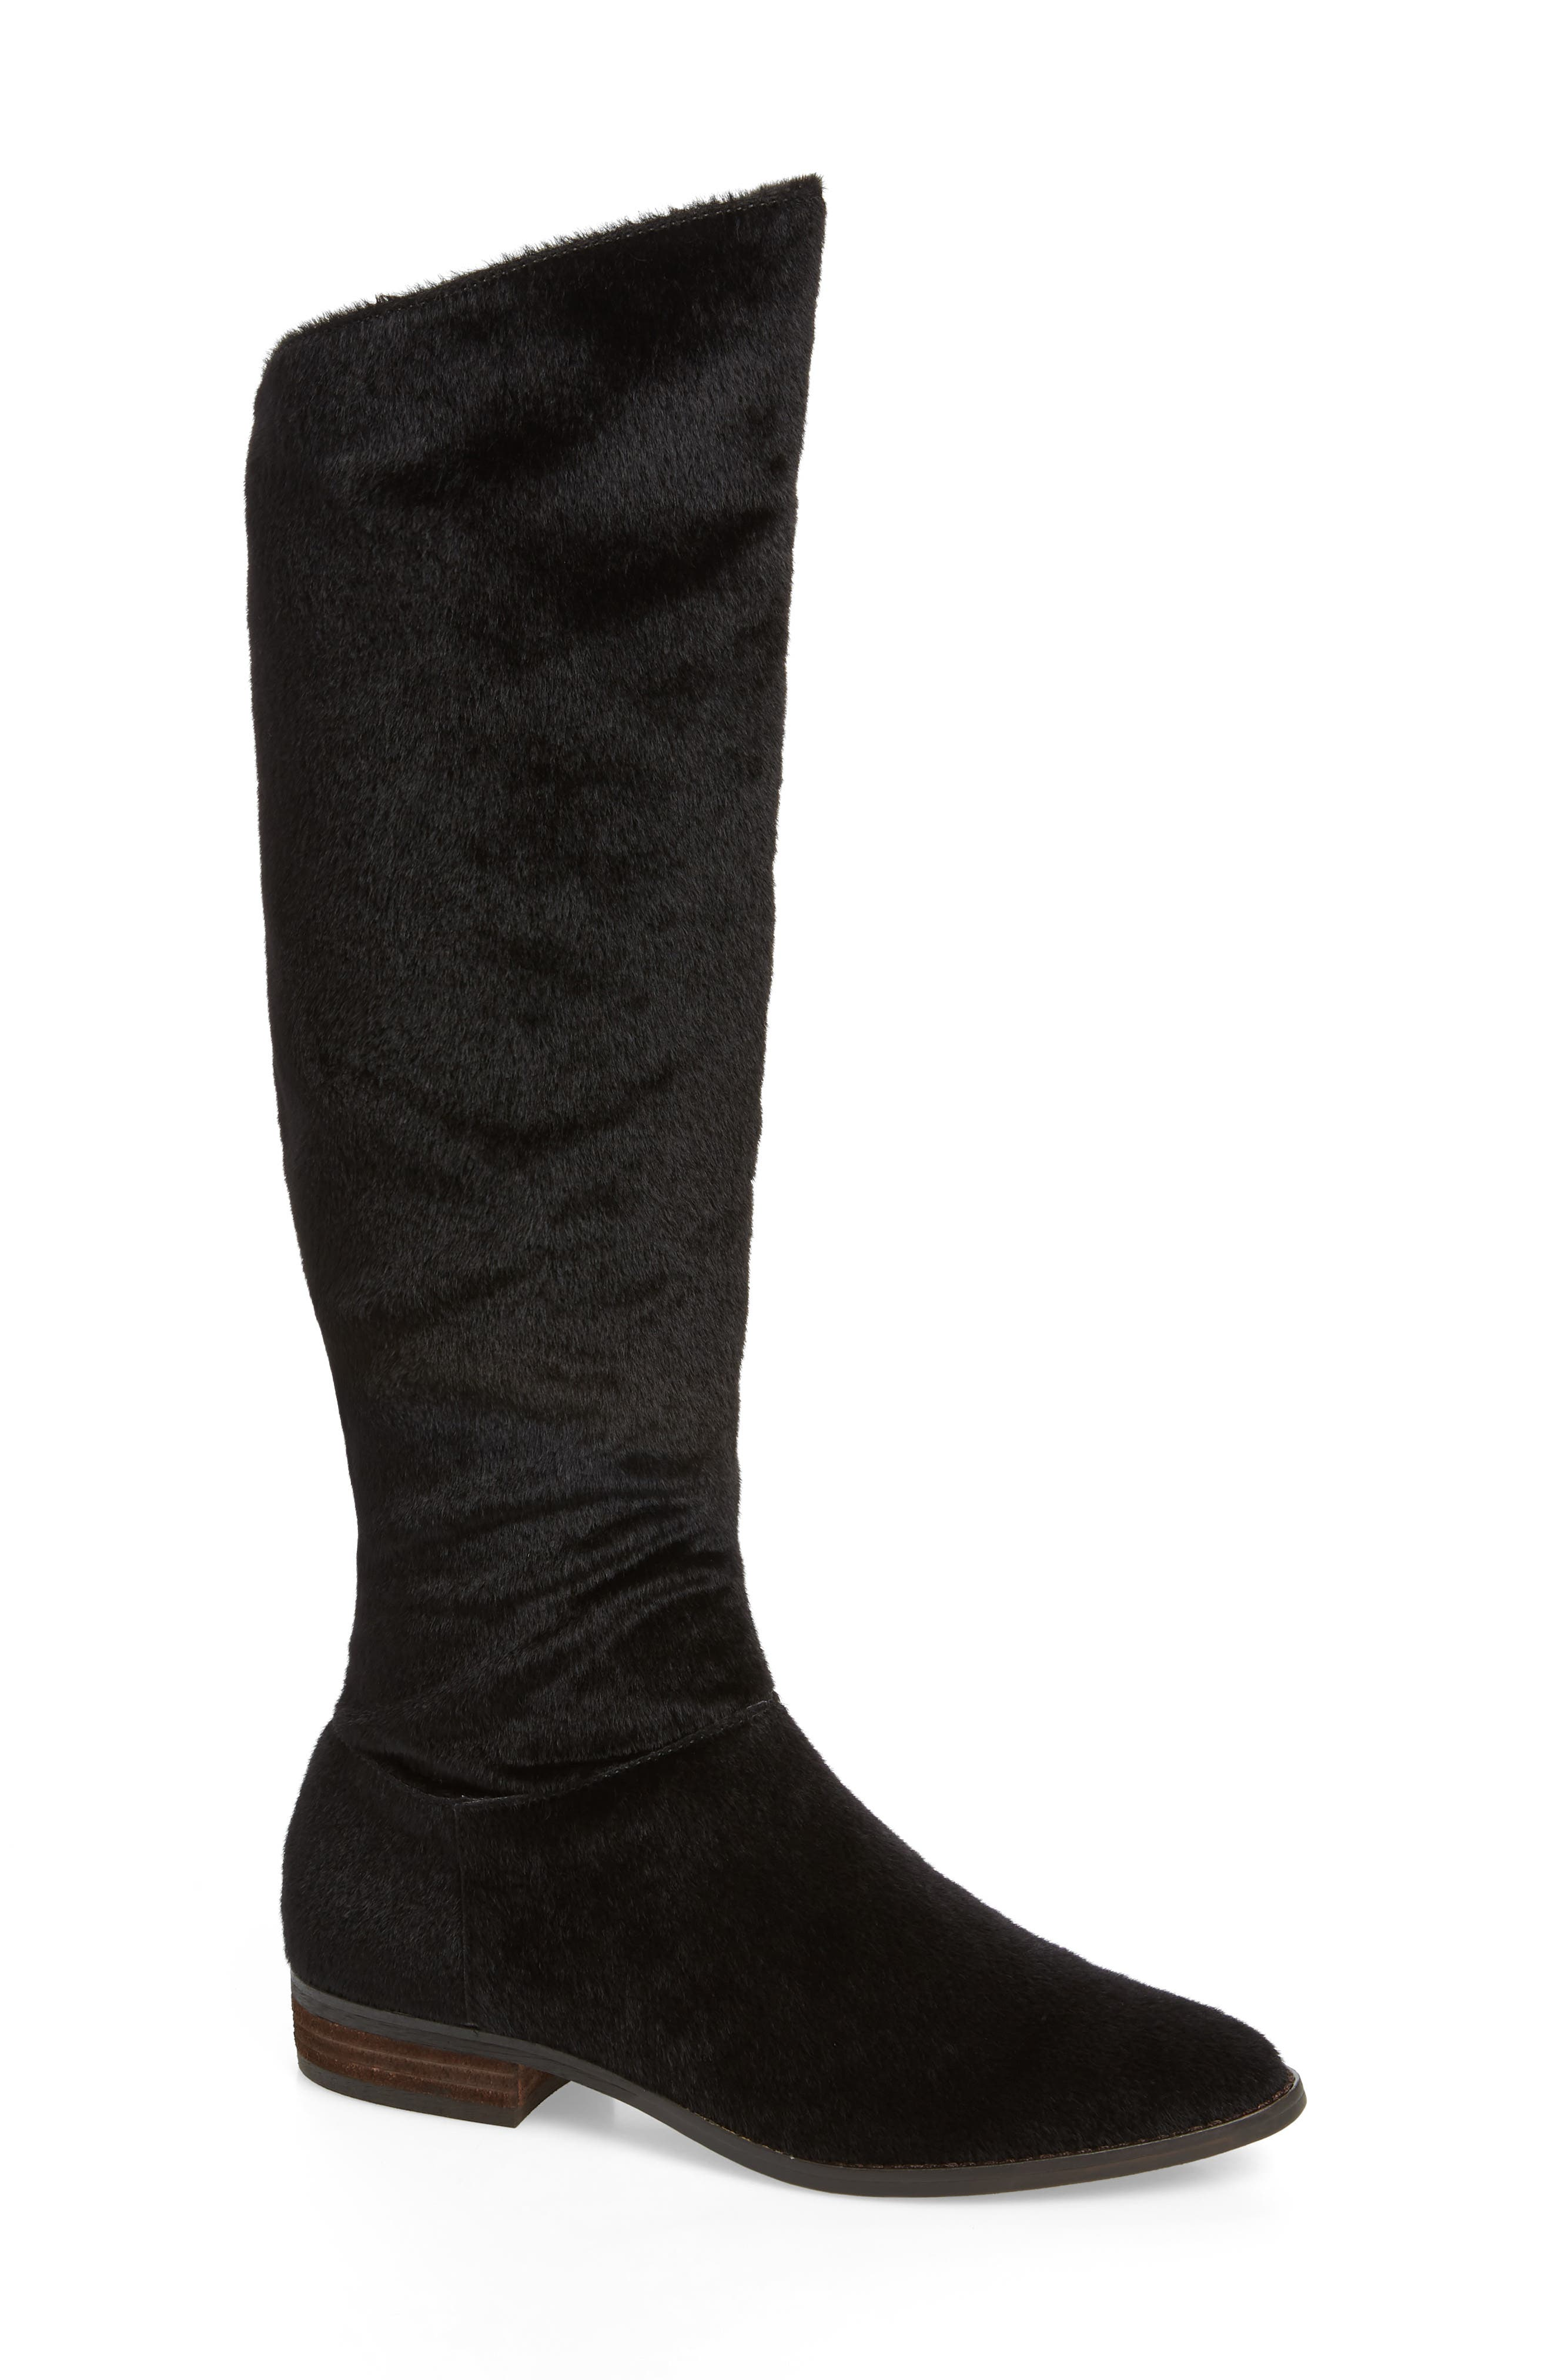 Band Of Gypsies Luna Over The Knee Boot- Black